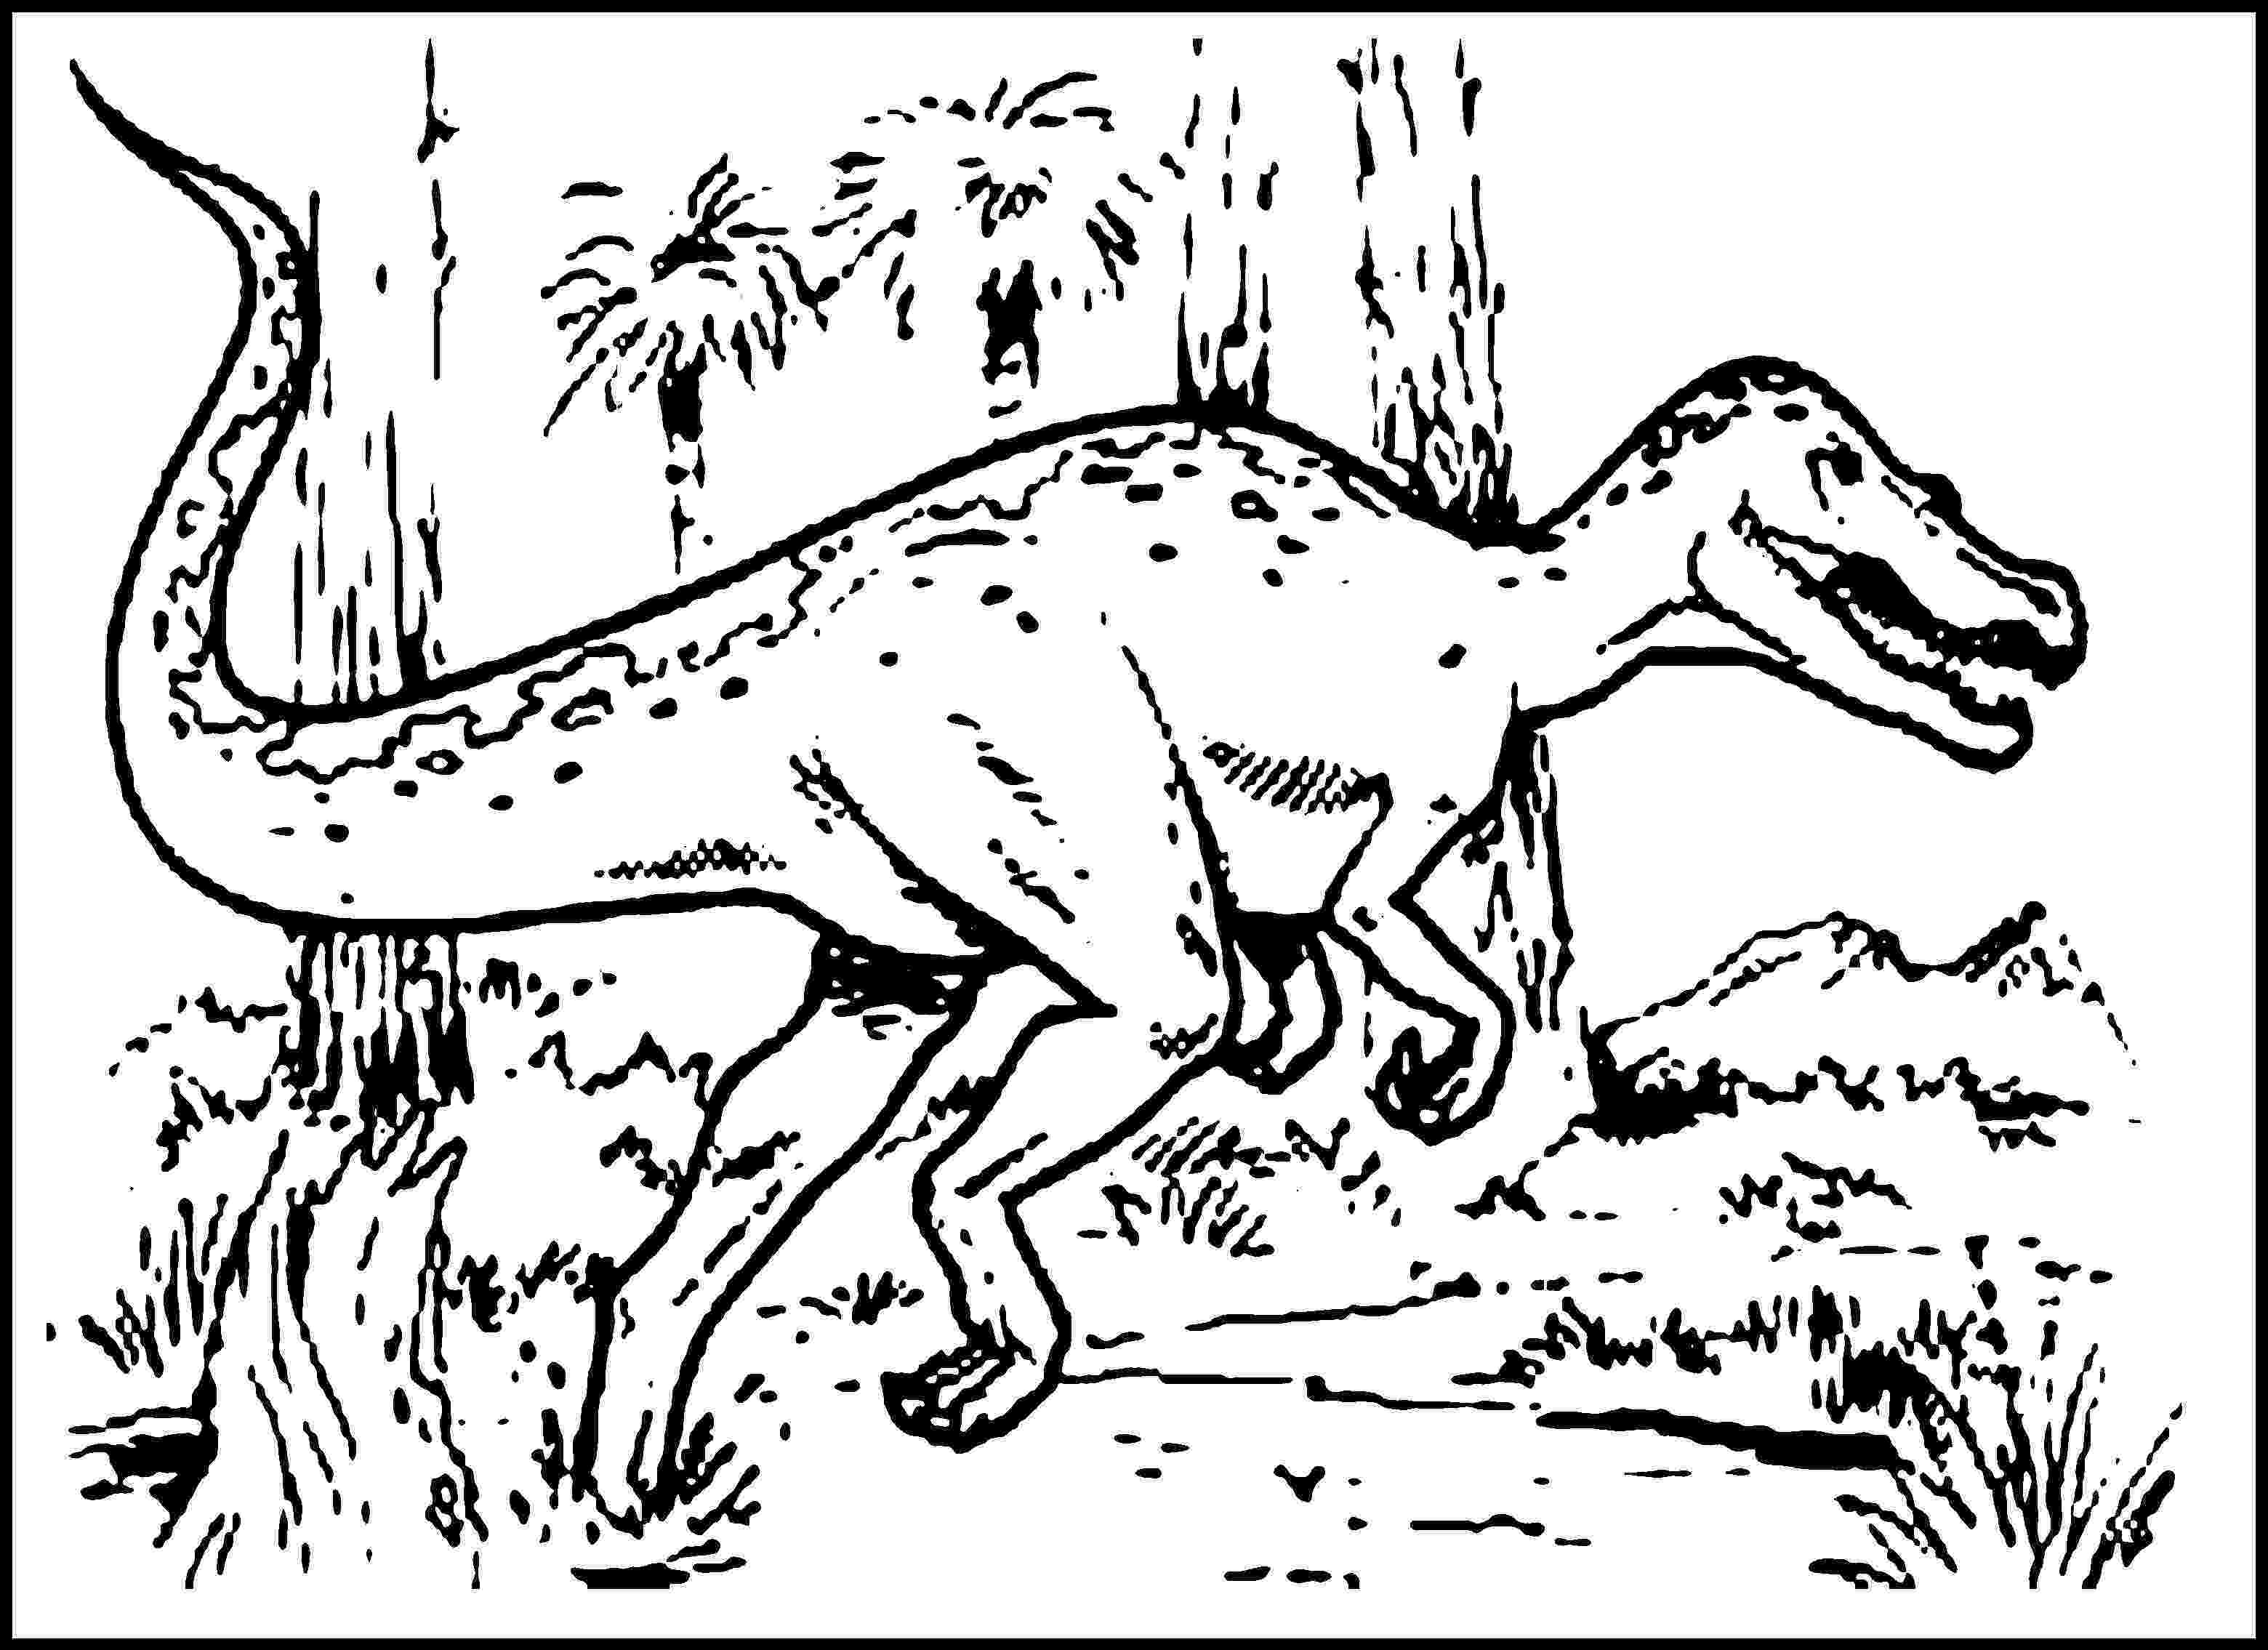 printable dinosaur pictures to color free printable dinosaur coloring pages for kids to dinosaur printable pictures color